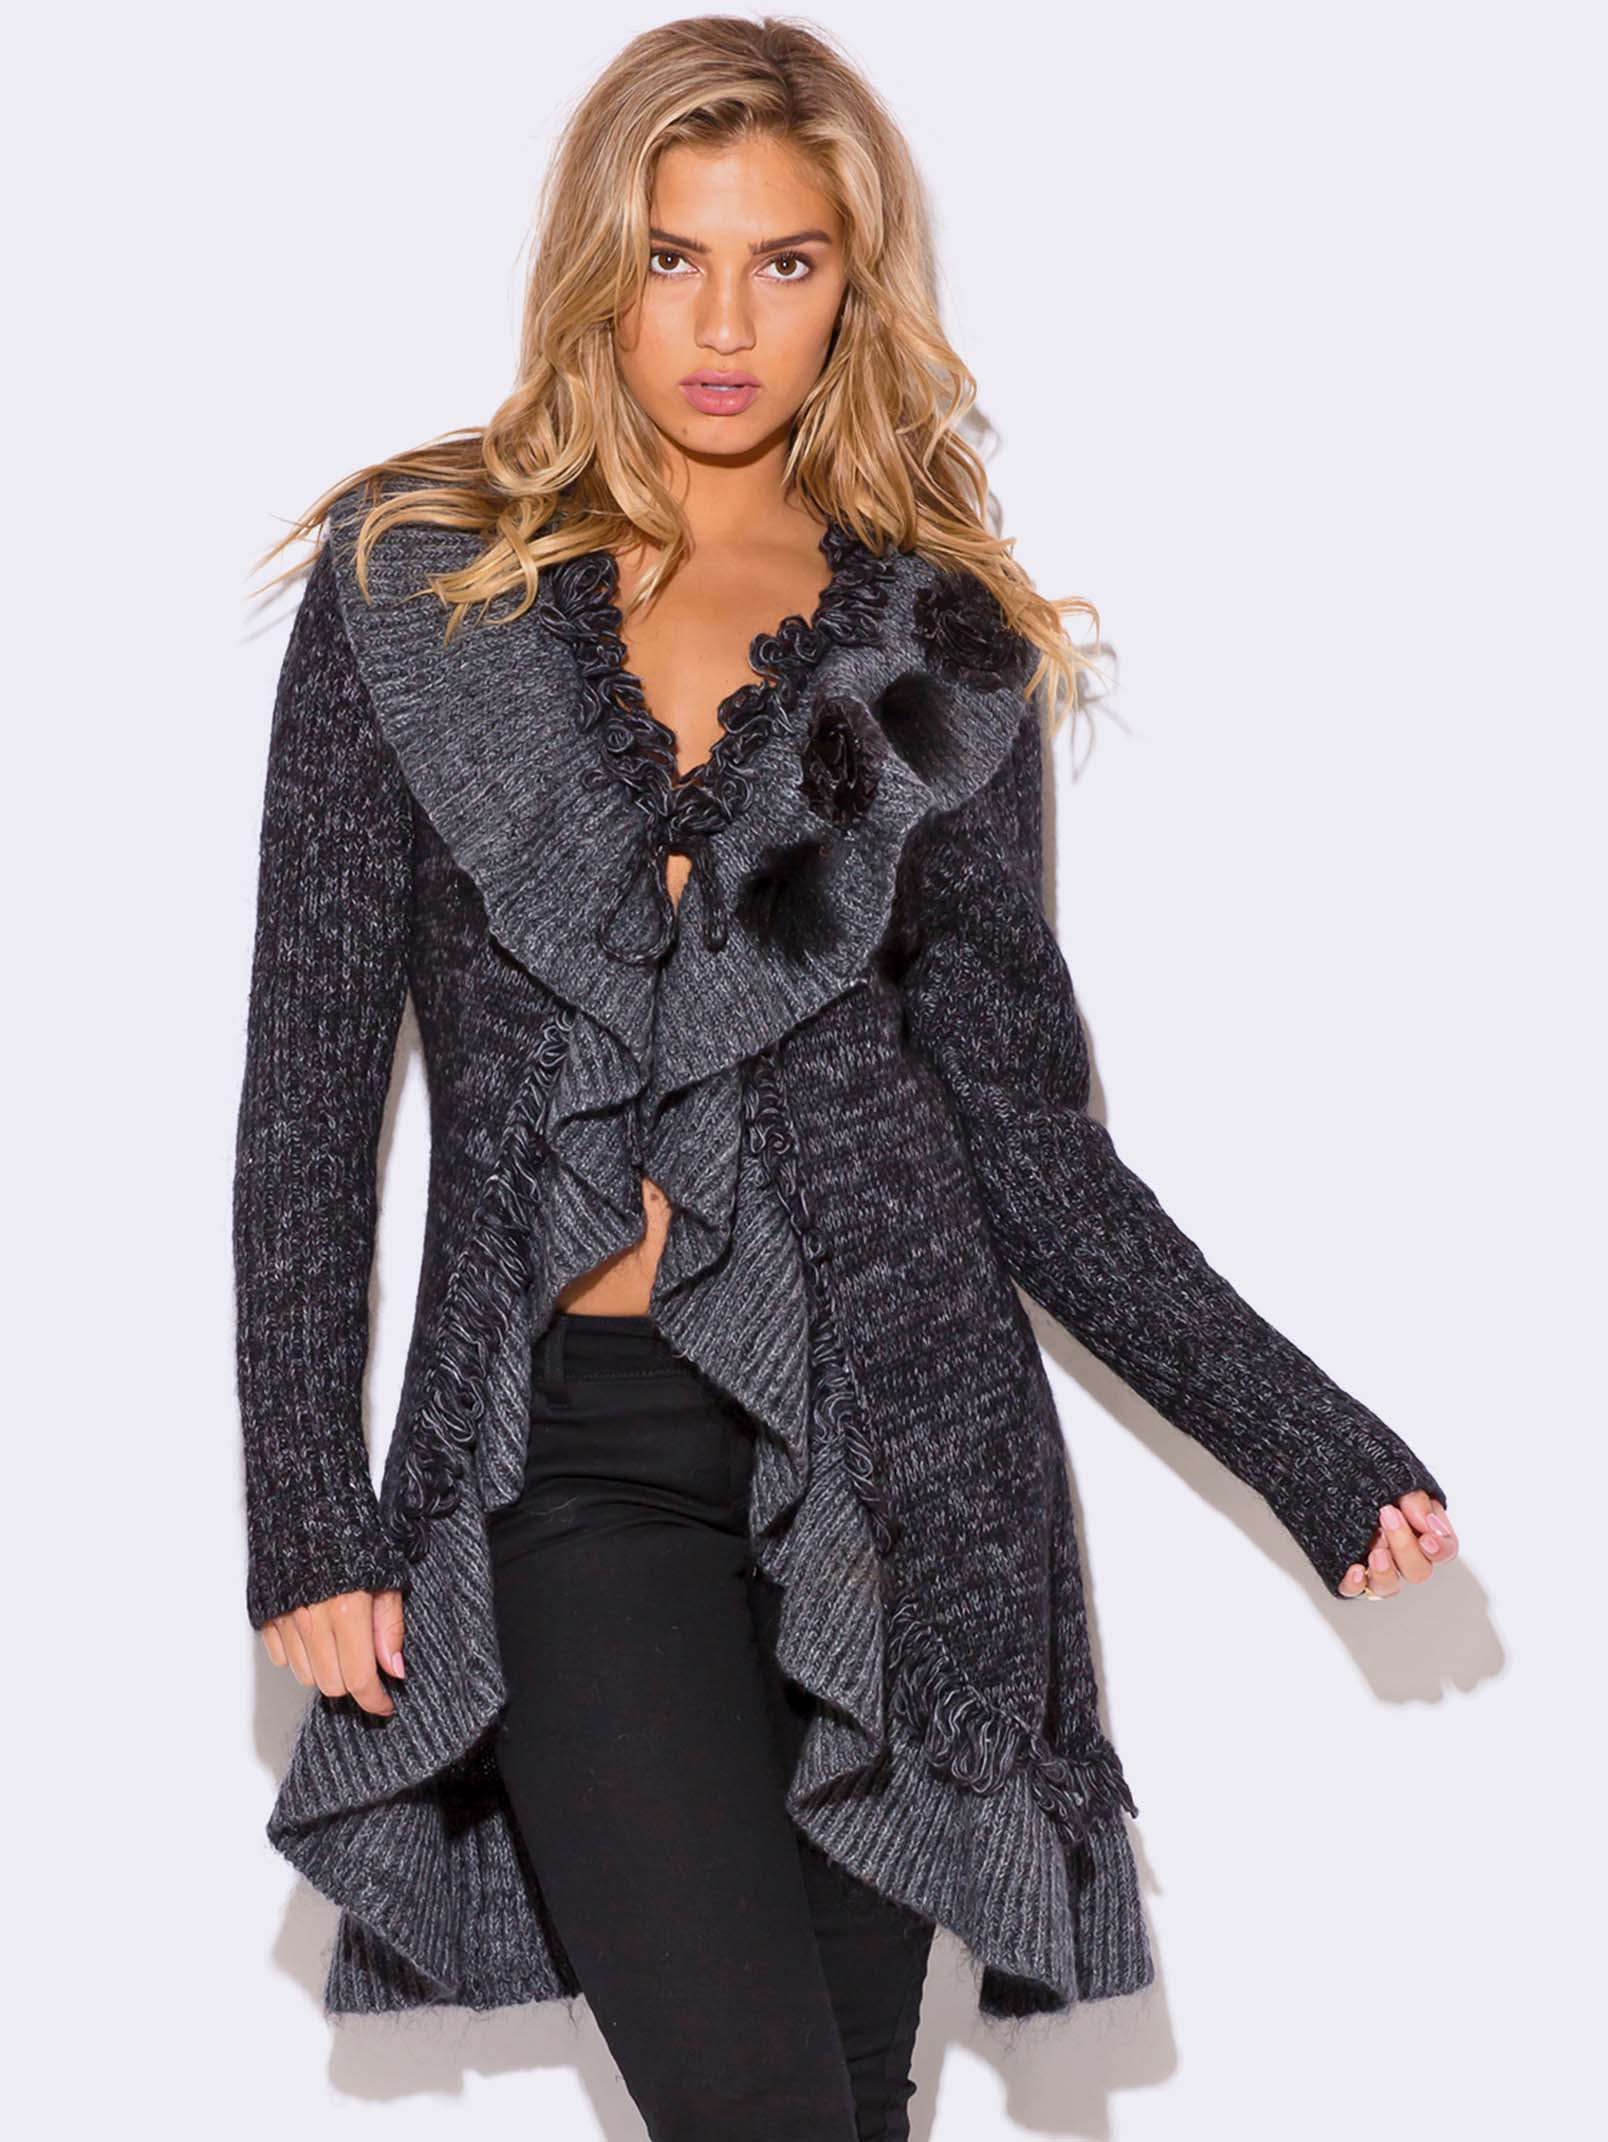 CHARCOAL GRAY WOOL MOHAIR BLEND SWEATER COAT ...